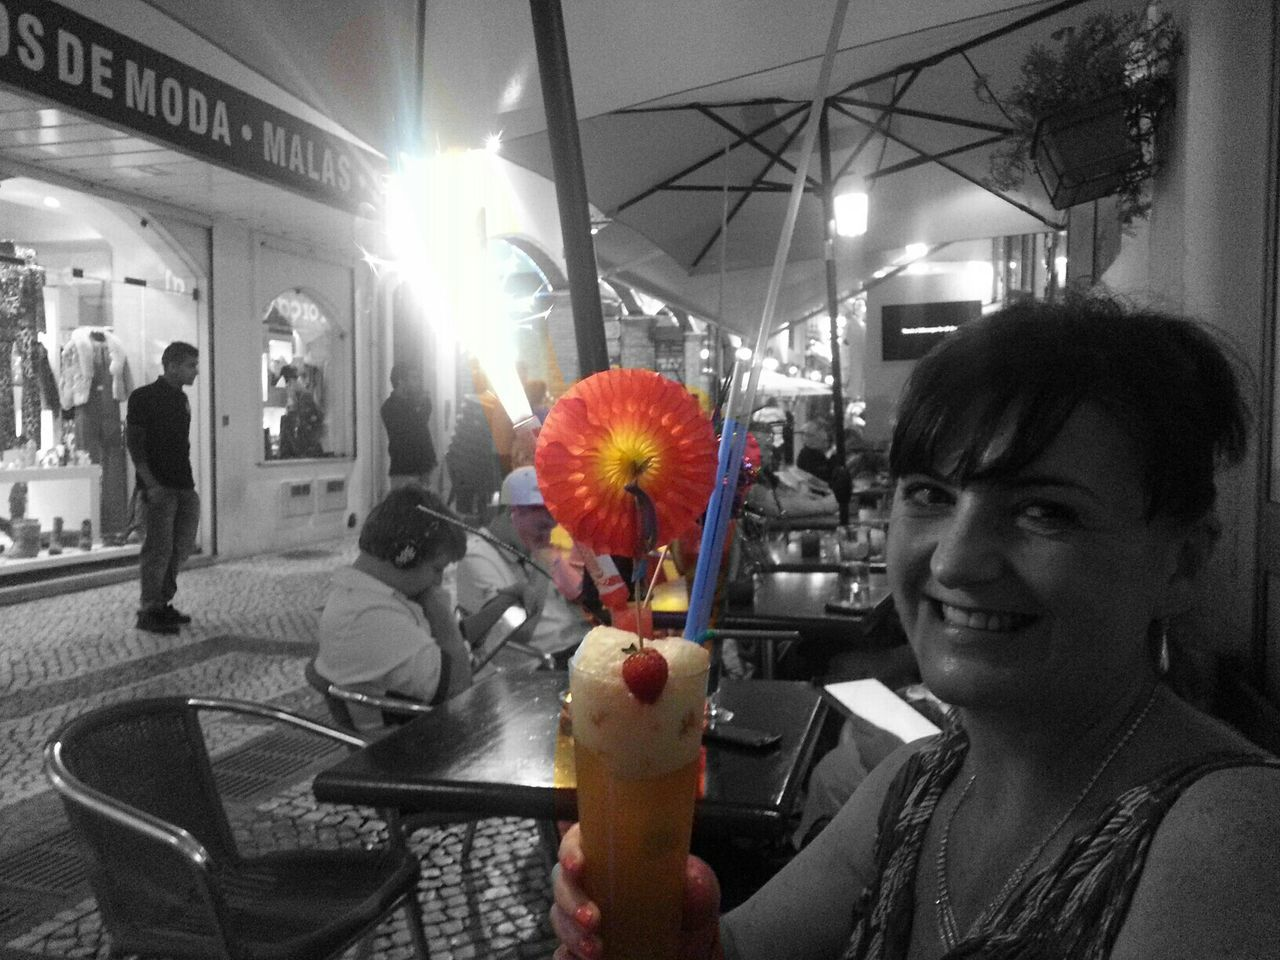 Faces Of Summer happy hour Albufeira old town, Portugal Albeferia Portugal Algarve Holiday POV The Best From Holiday POV Colorsplash